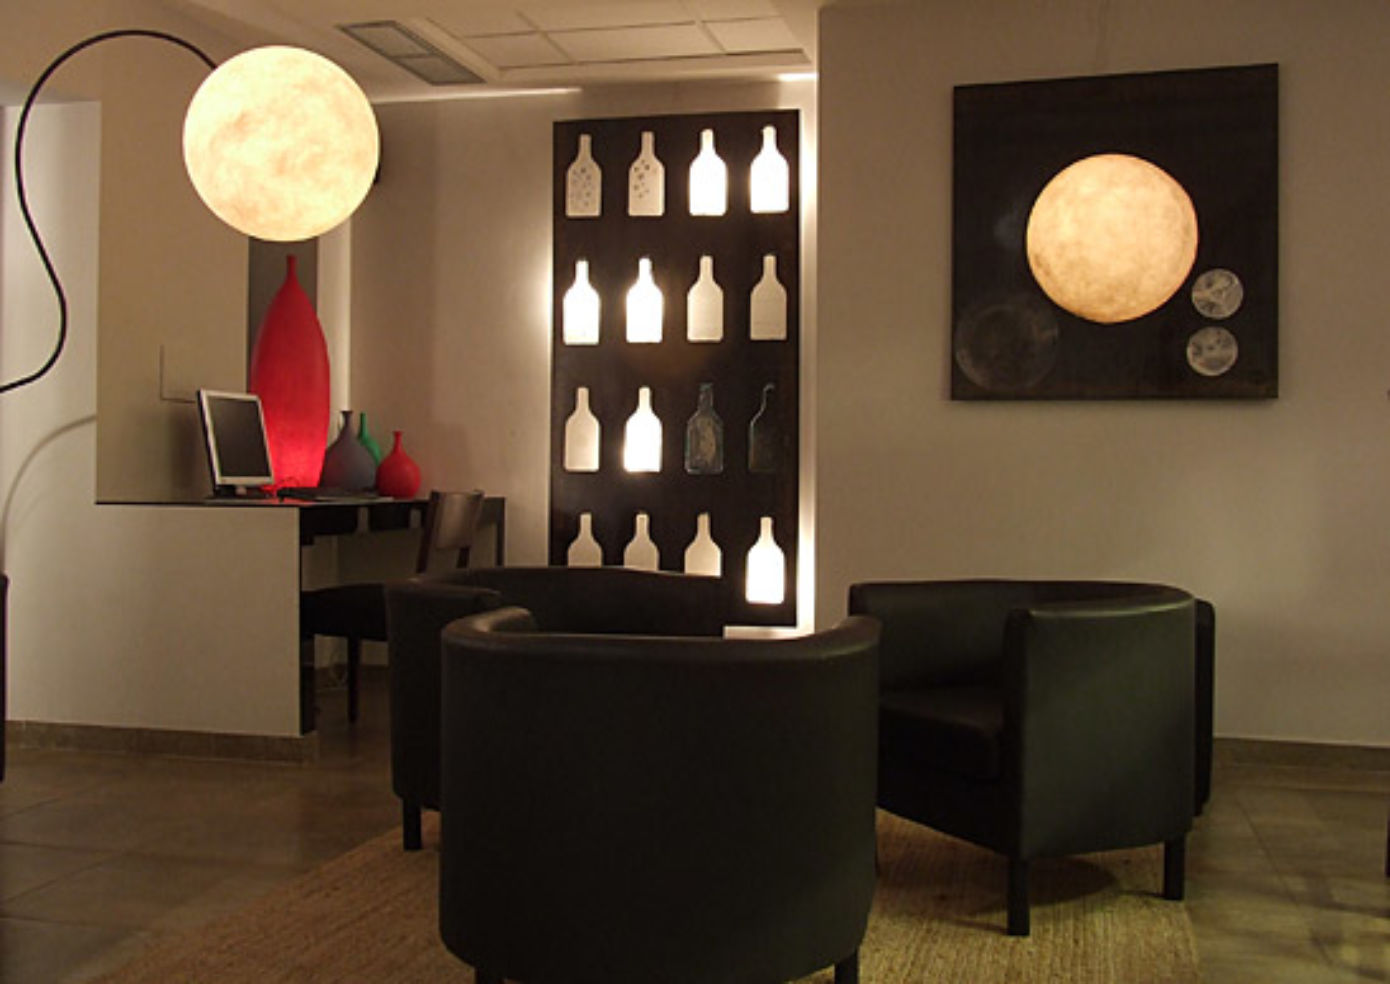 Hotel Re di Roma has modern wall art and chairs in a lounge where you can access the Internet for free.